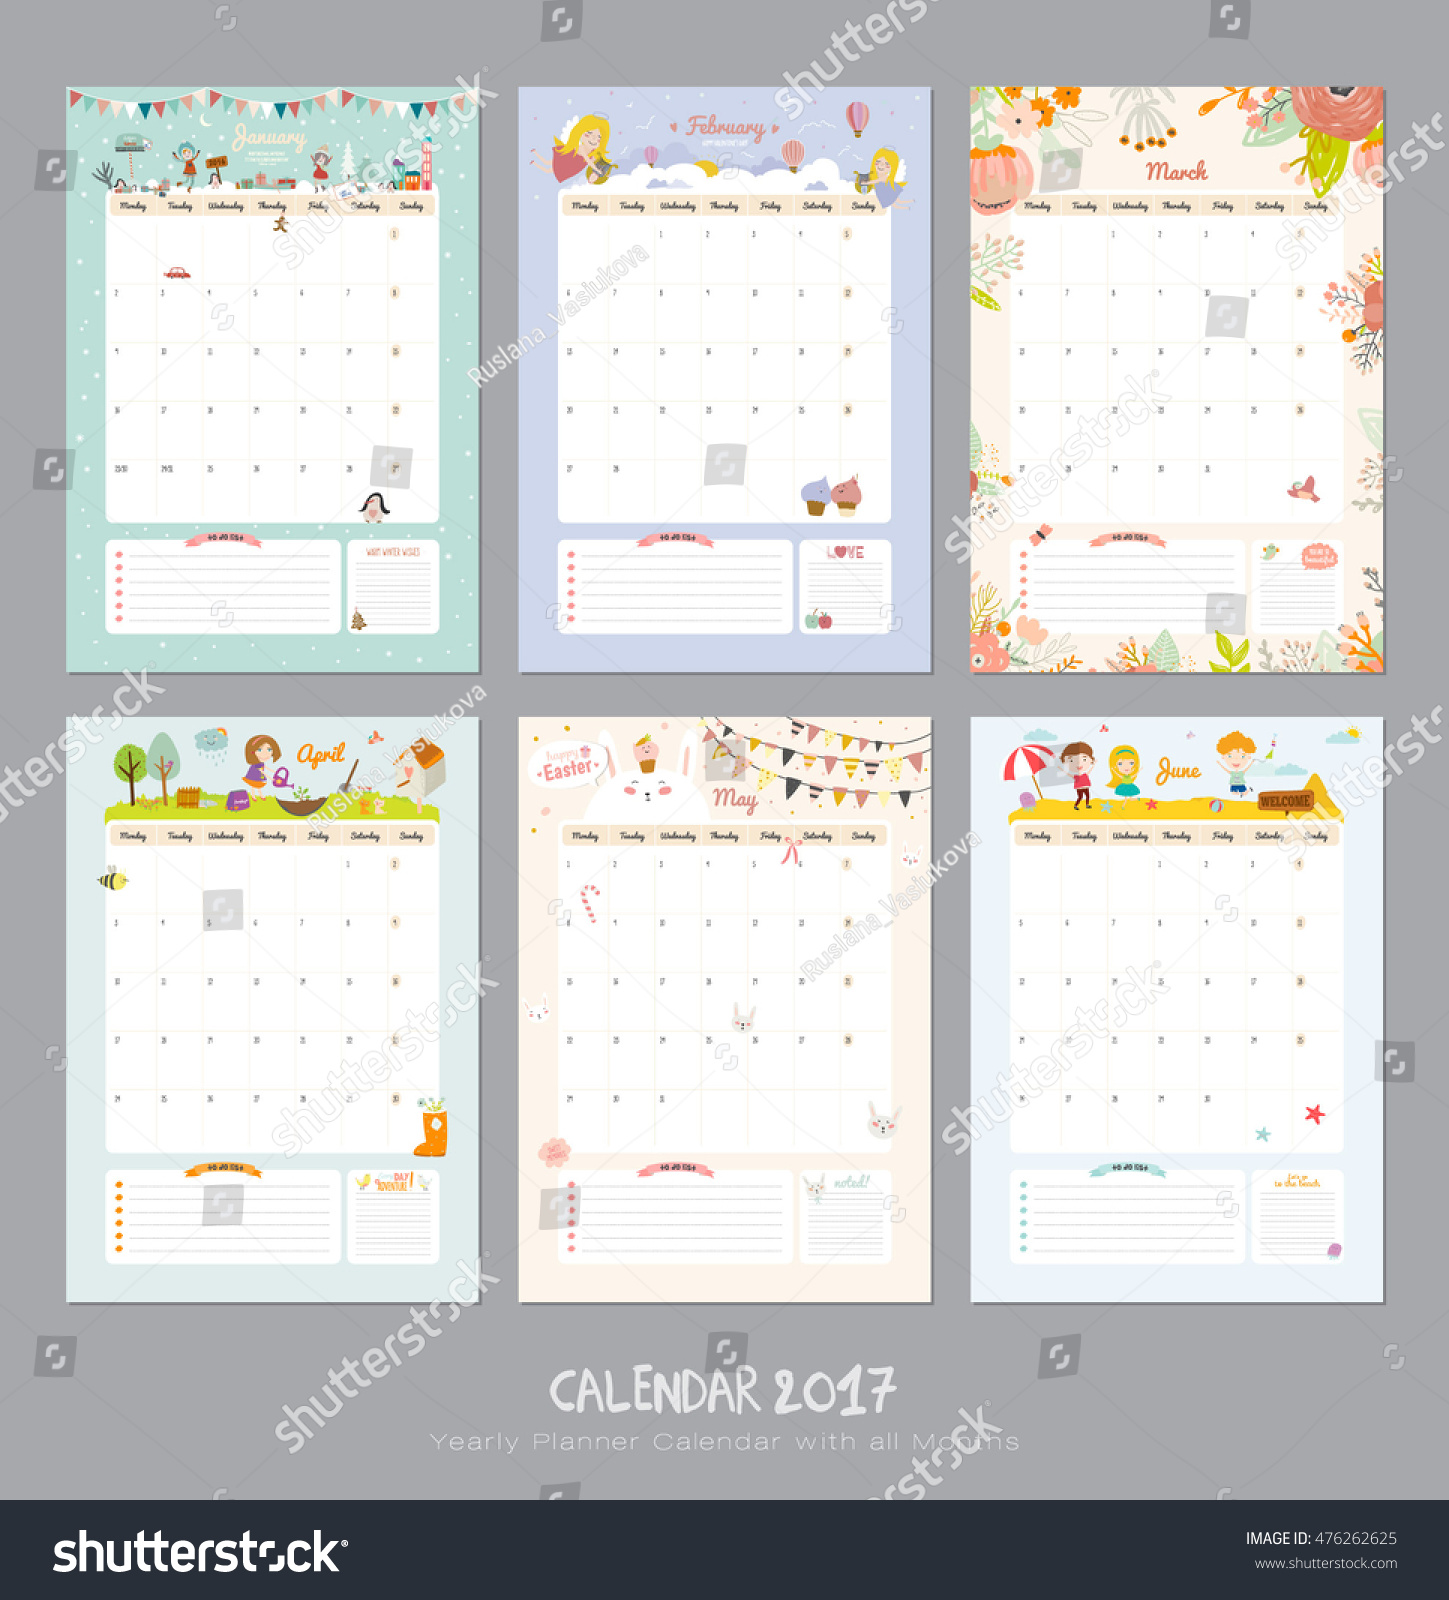 Calendar Planner Organizer : Cute calendar template yearly planner stock vector